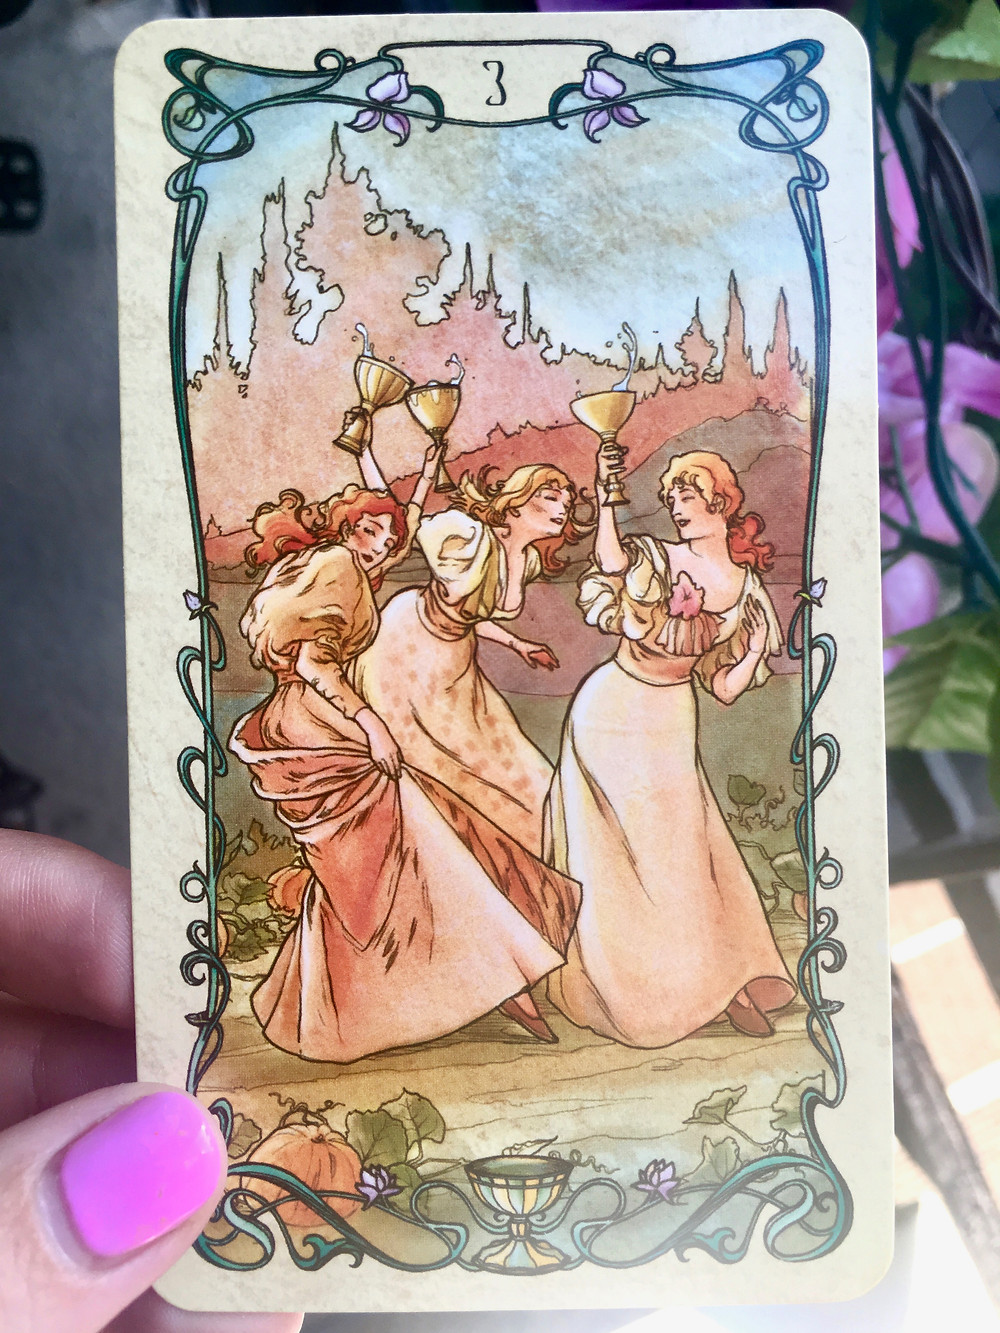 three of cups, Mucha Tarot deck - Celebration and Emotional Connection